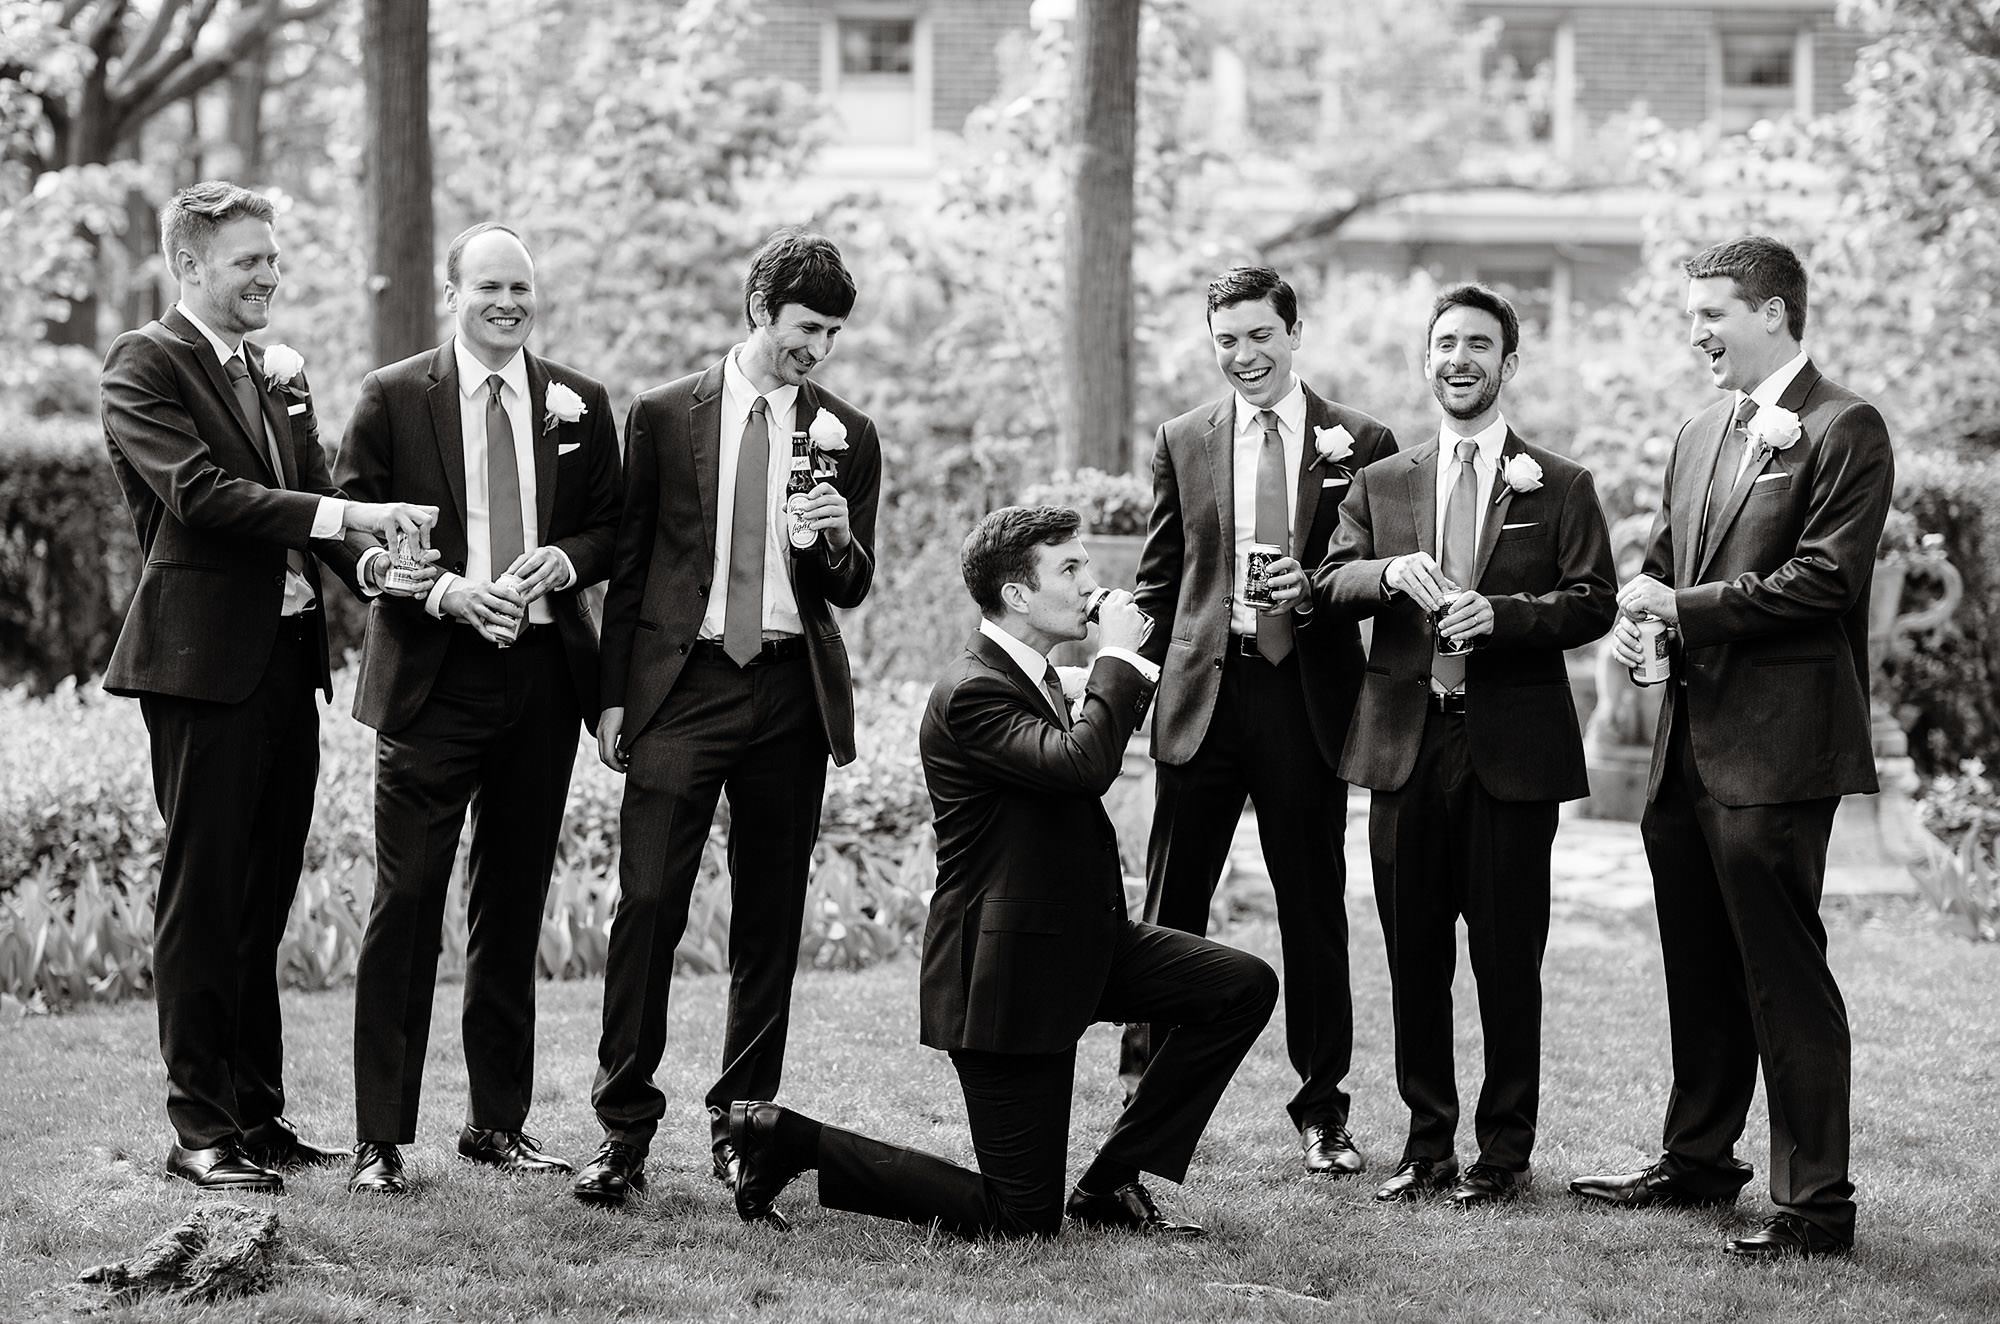 A portrait of the groomsmen at Meridian House.